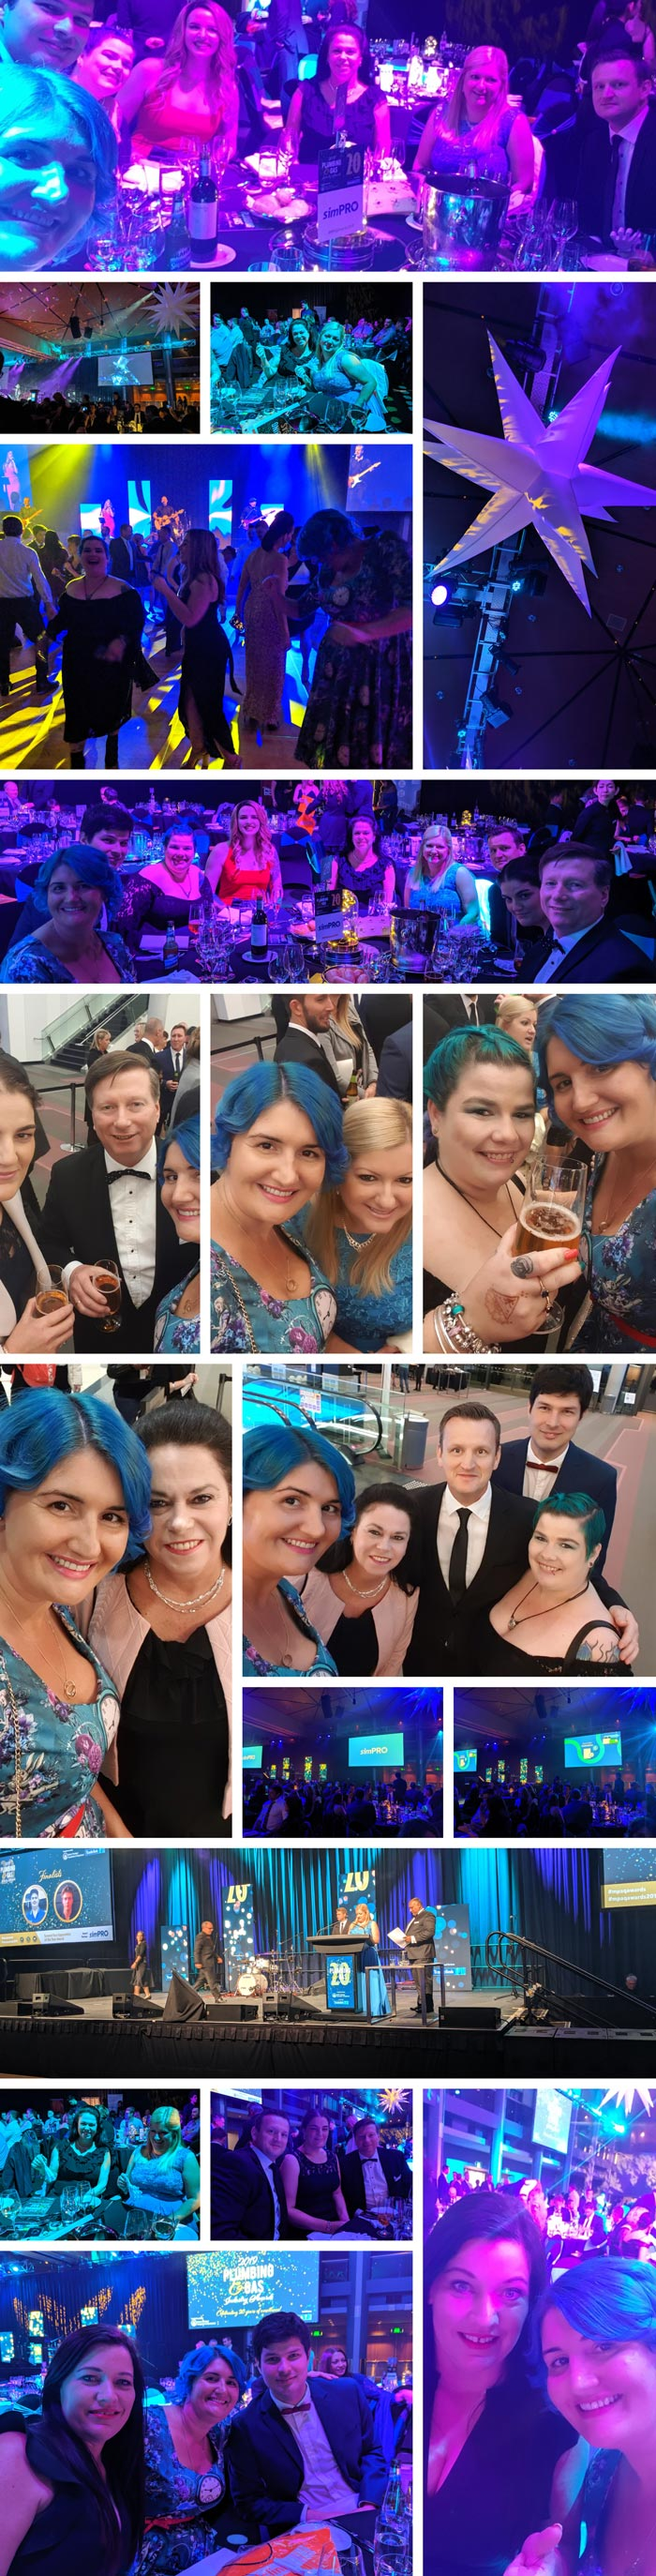 AU Master Plumbers Association Queensland Awards photo collage